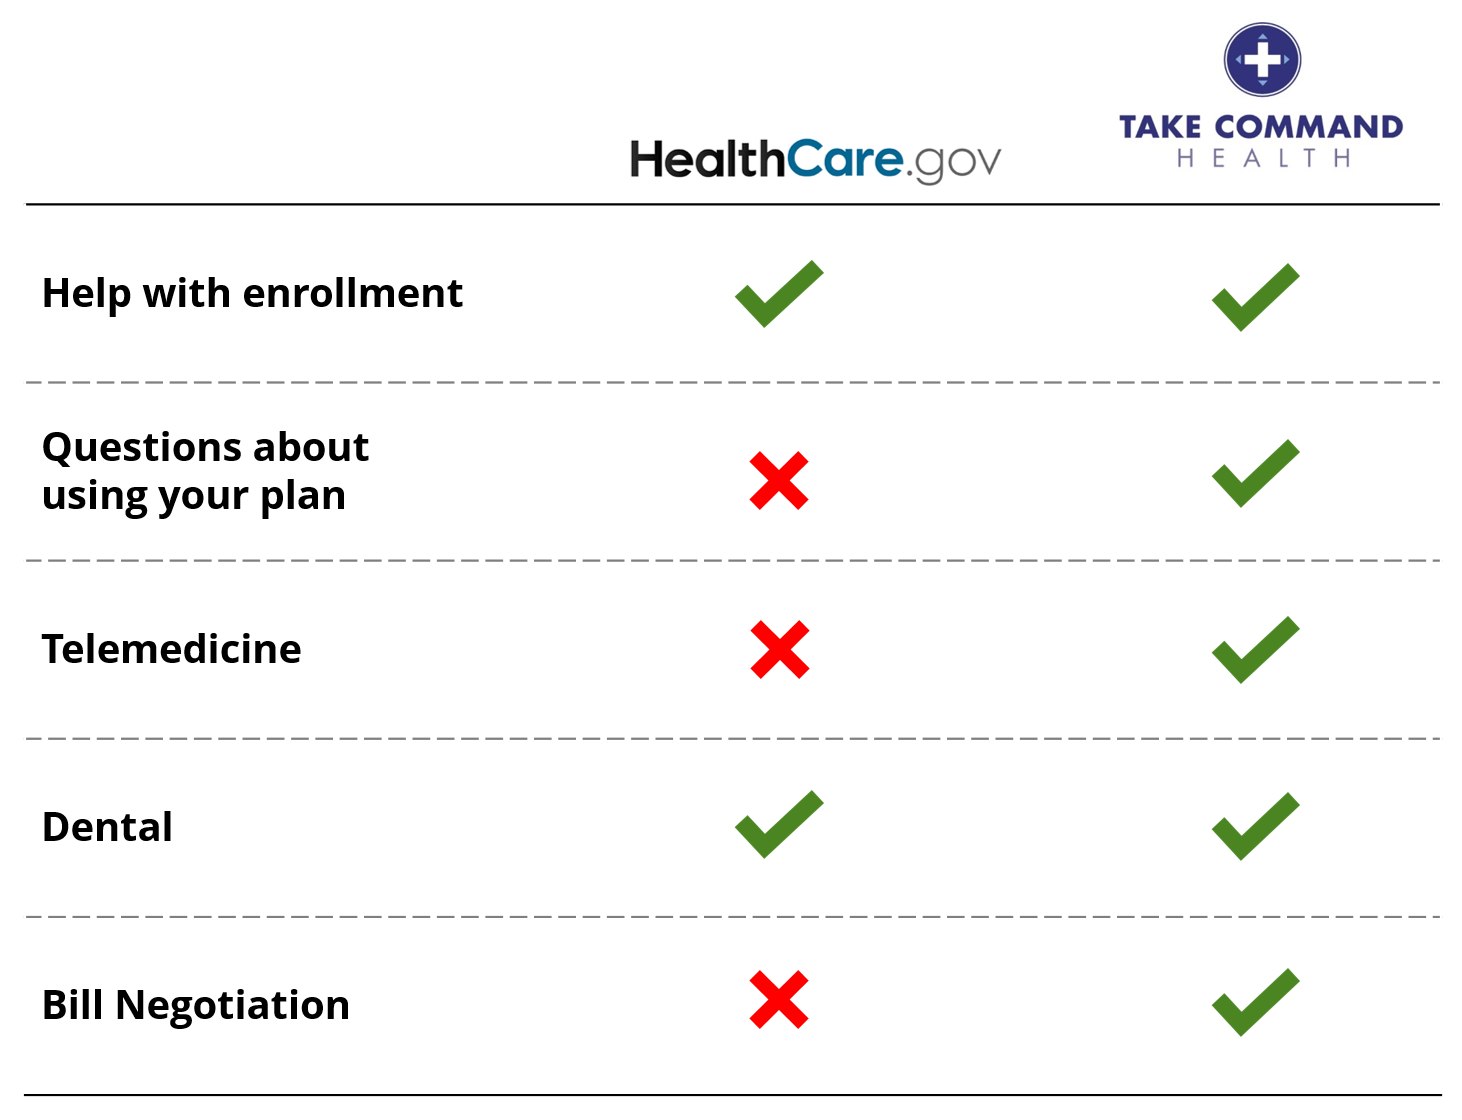 hcgov-vs-tch-feature-chart